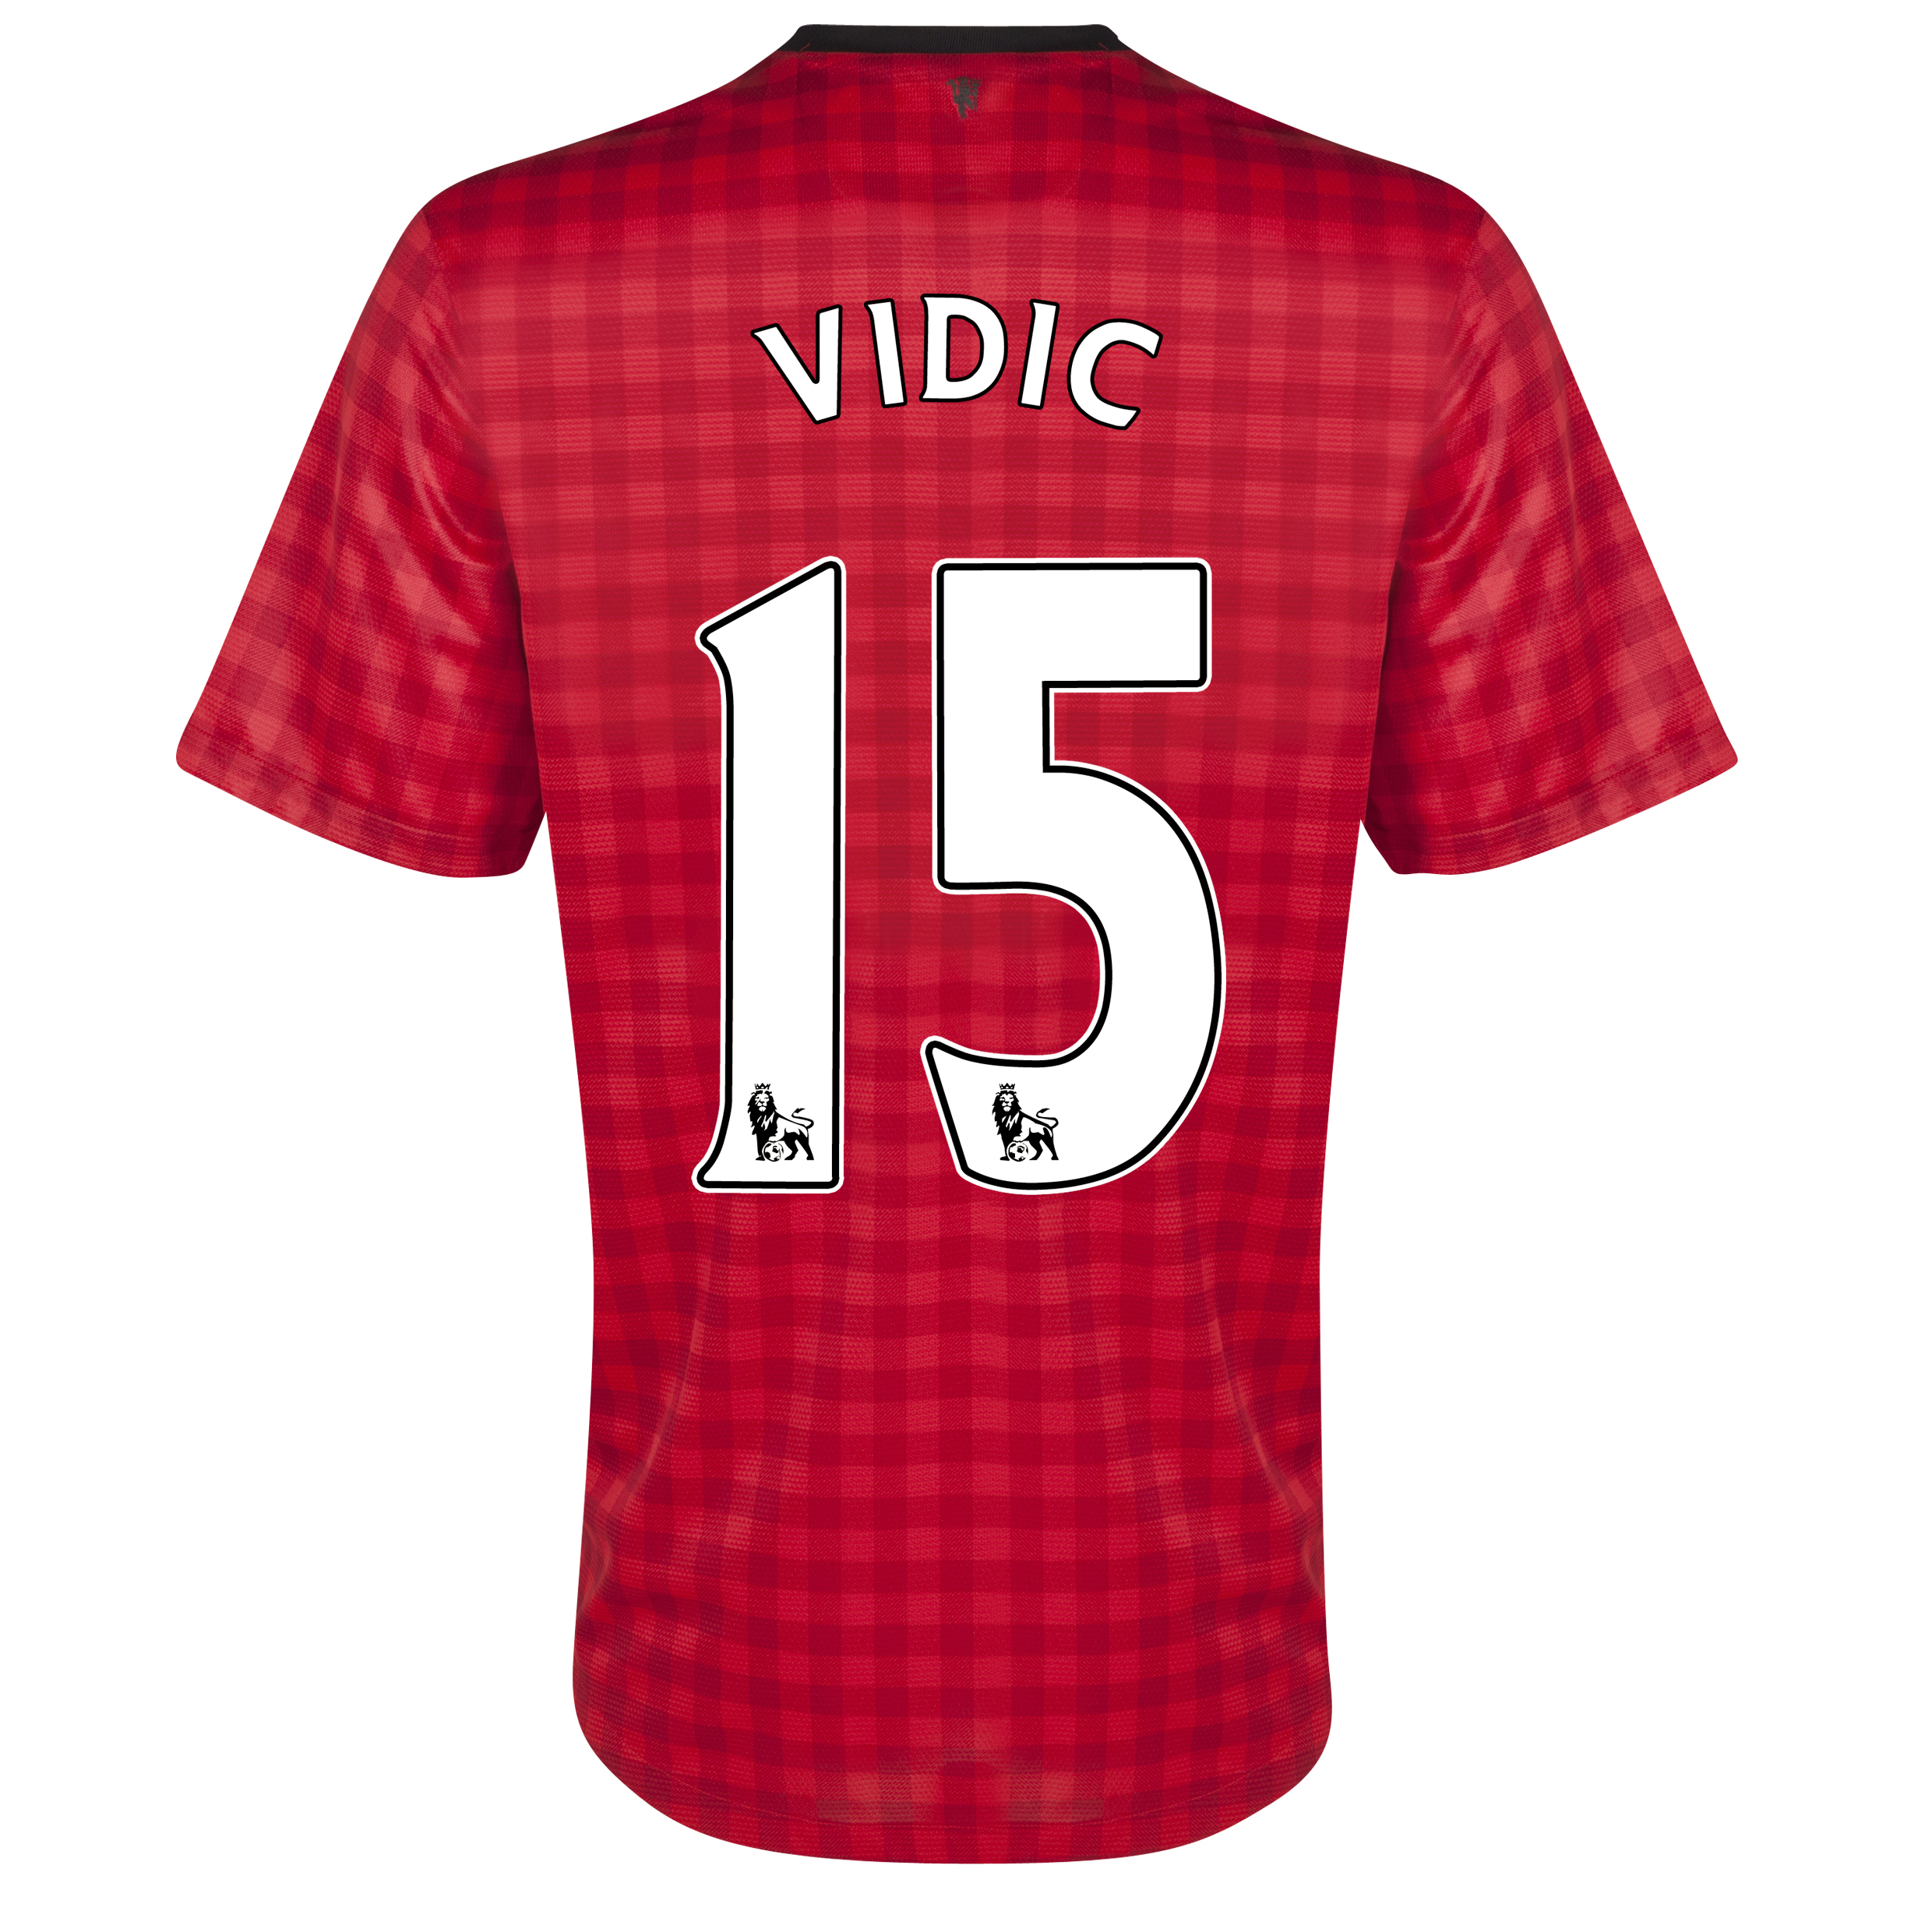 Manchester United Home Shirt 2012/13  - Youths with Vidic 15 printing